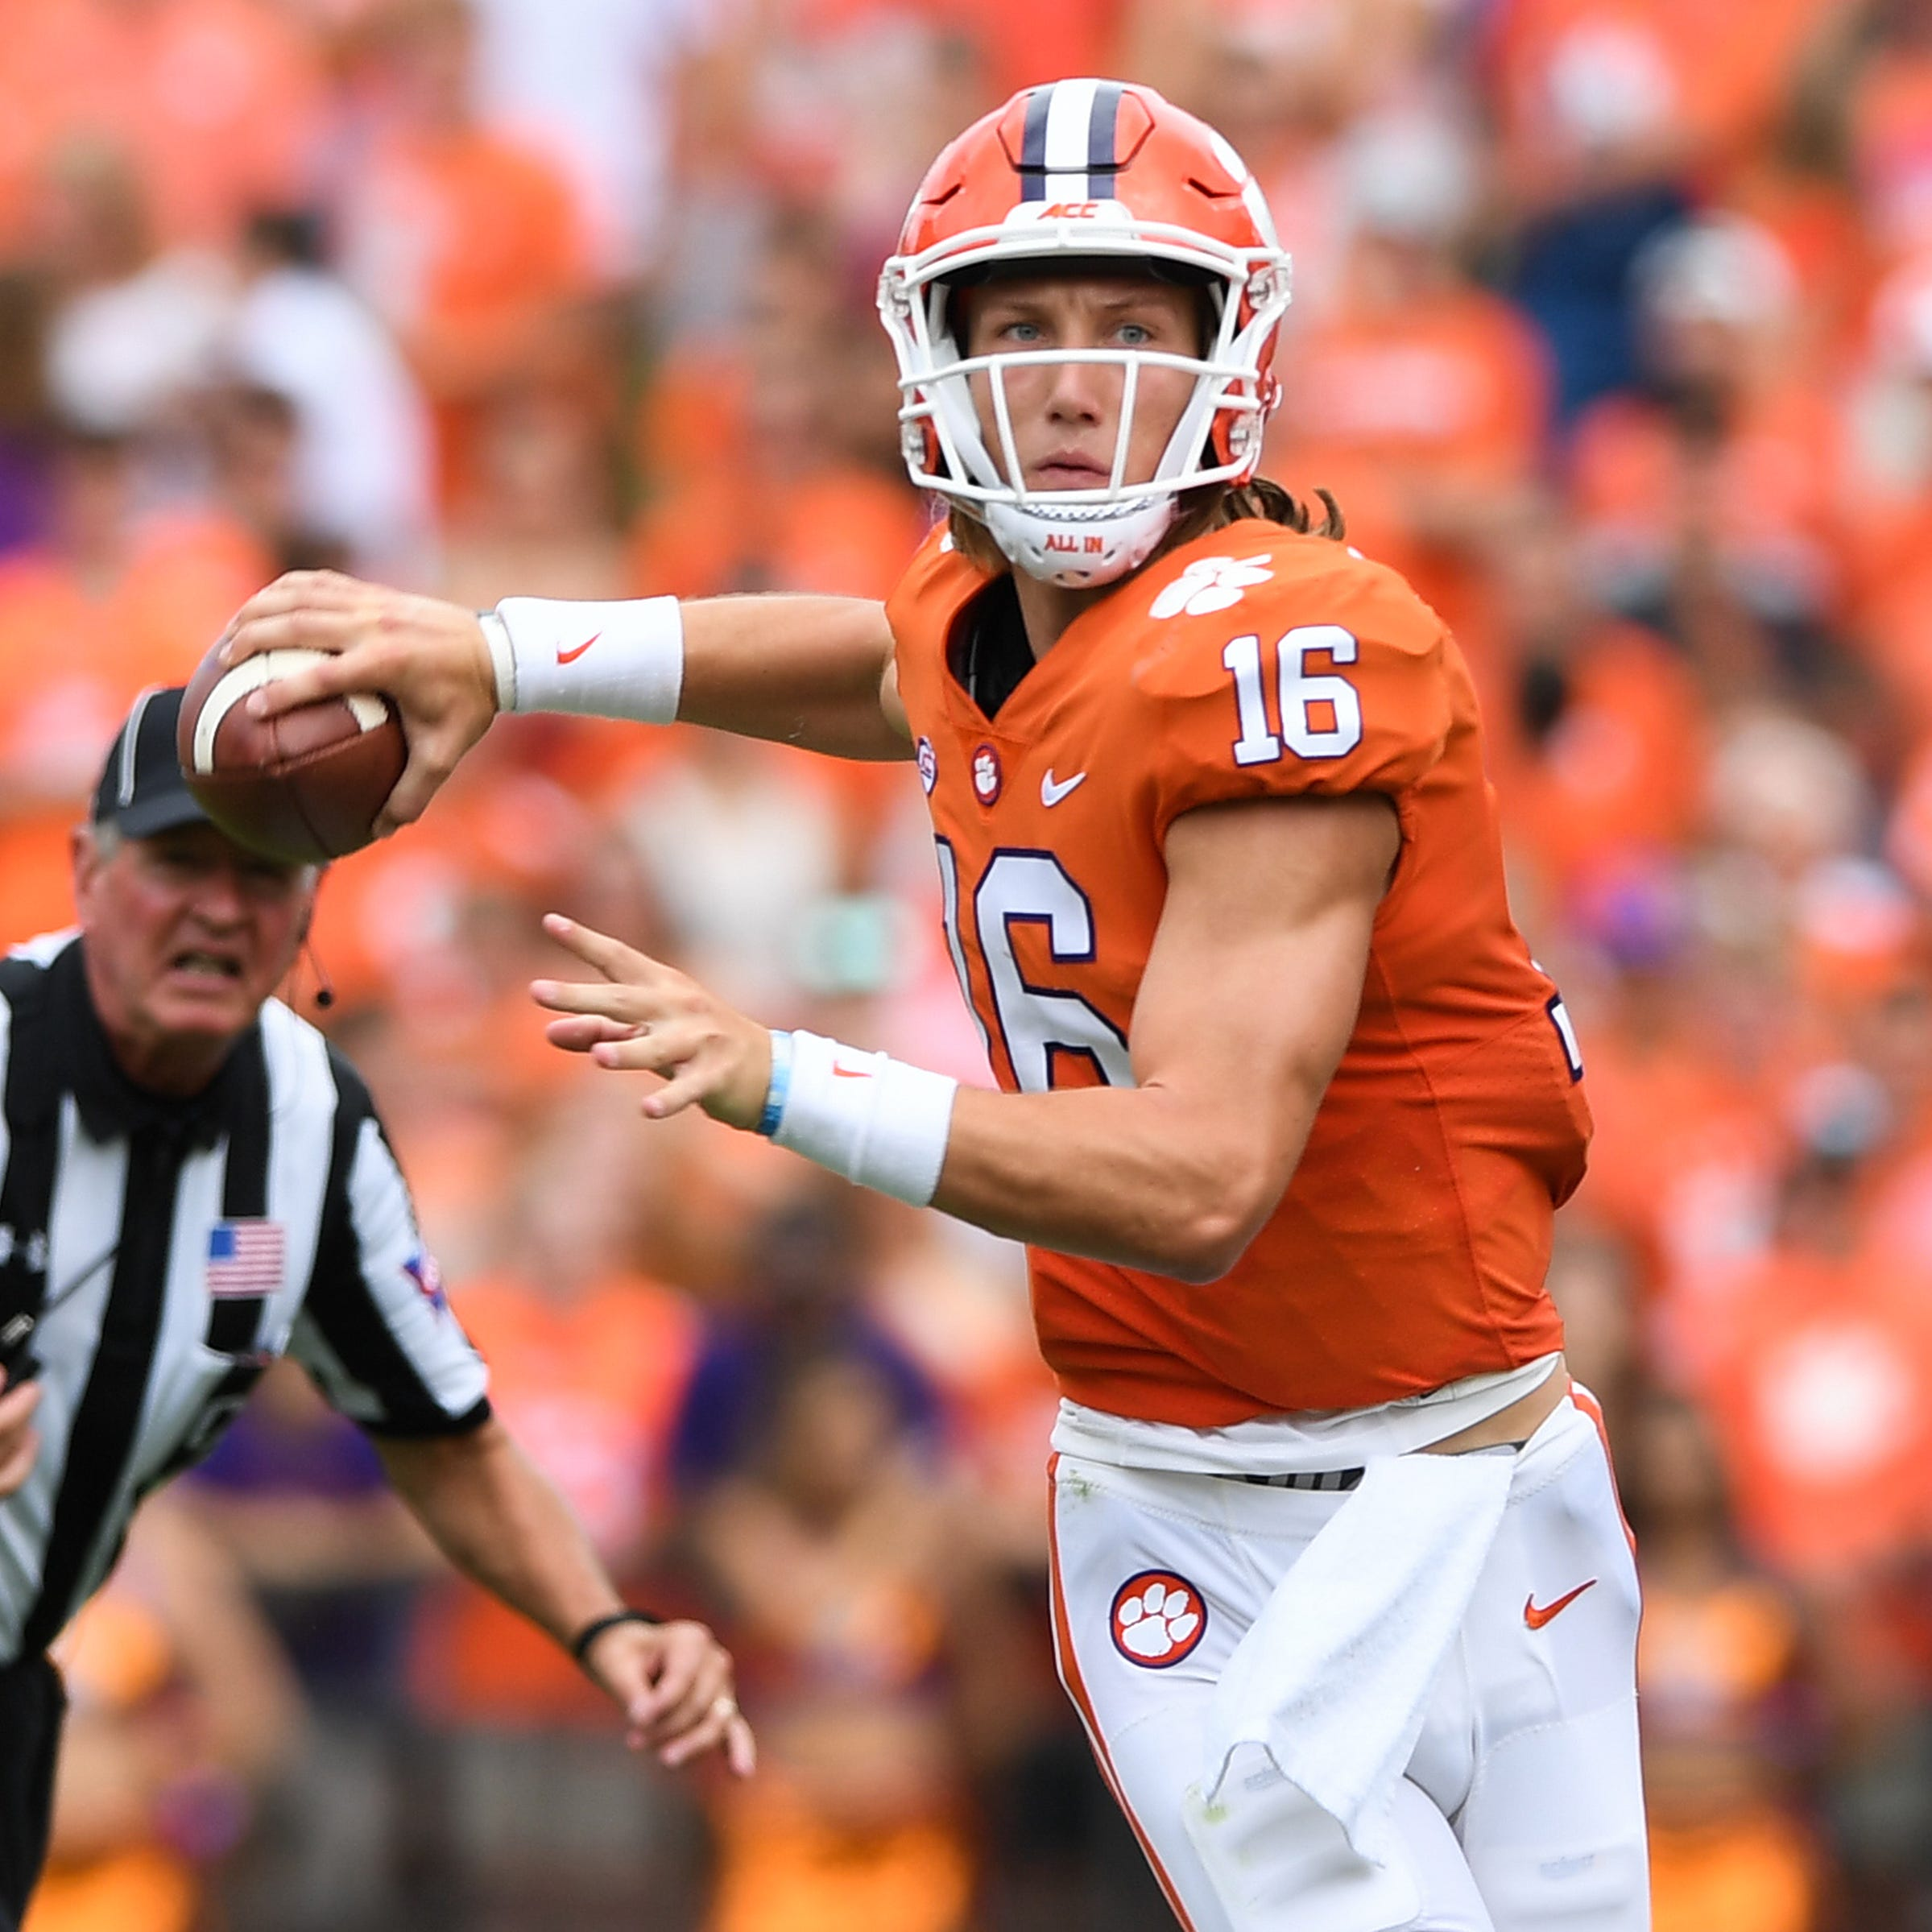 'Kind of eerie': Clemson QBs Kelly Bryant and Trevor Lawrence posting similar numbers